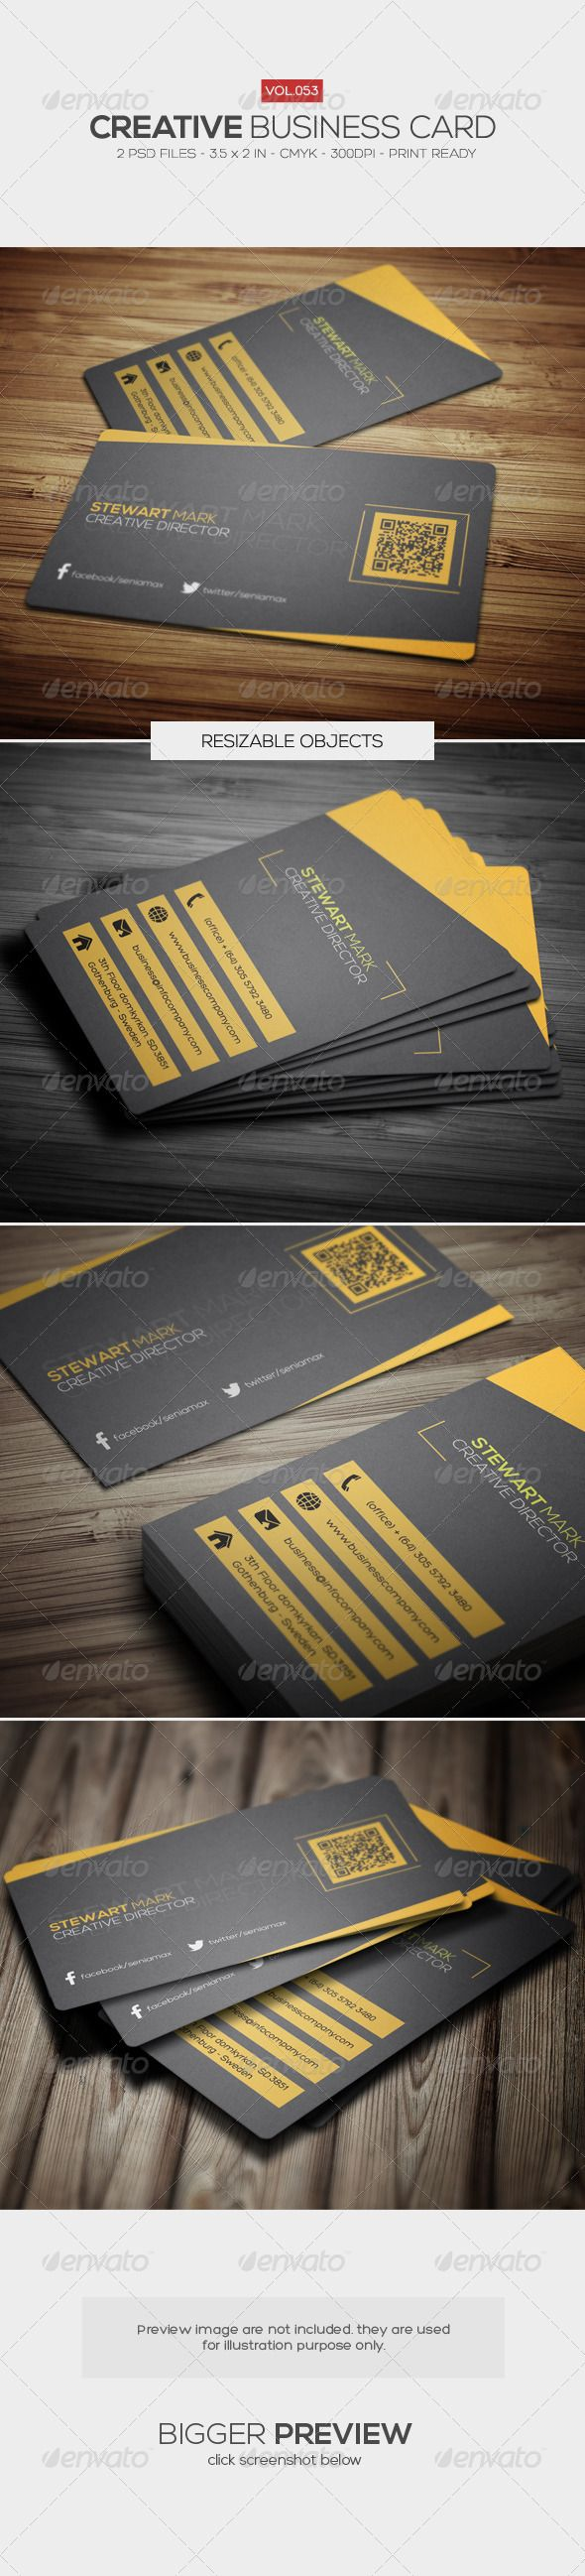 572 best business card inspiration images on pinterest business creative business card 053 colourmoves